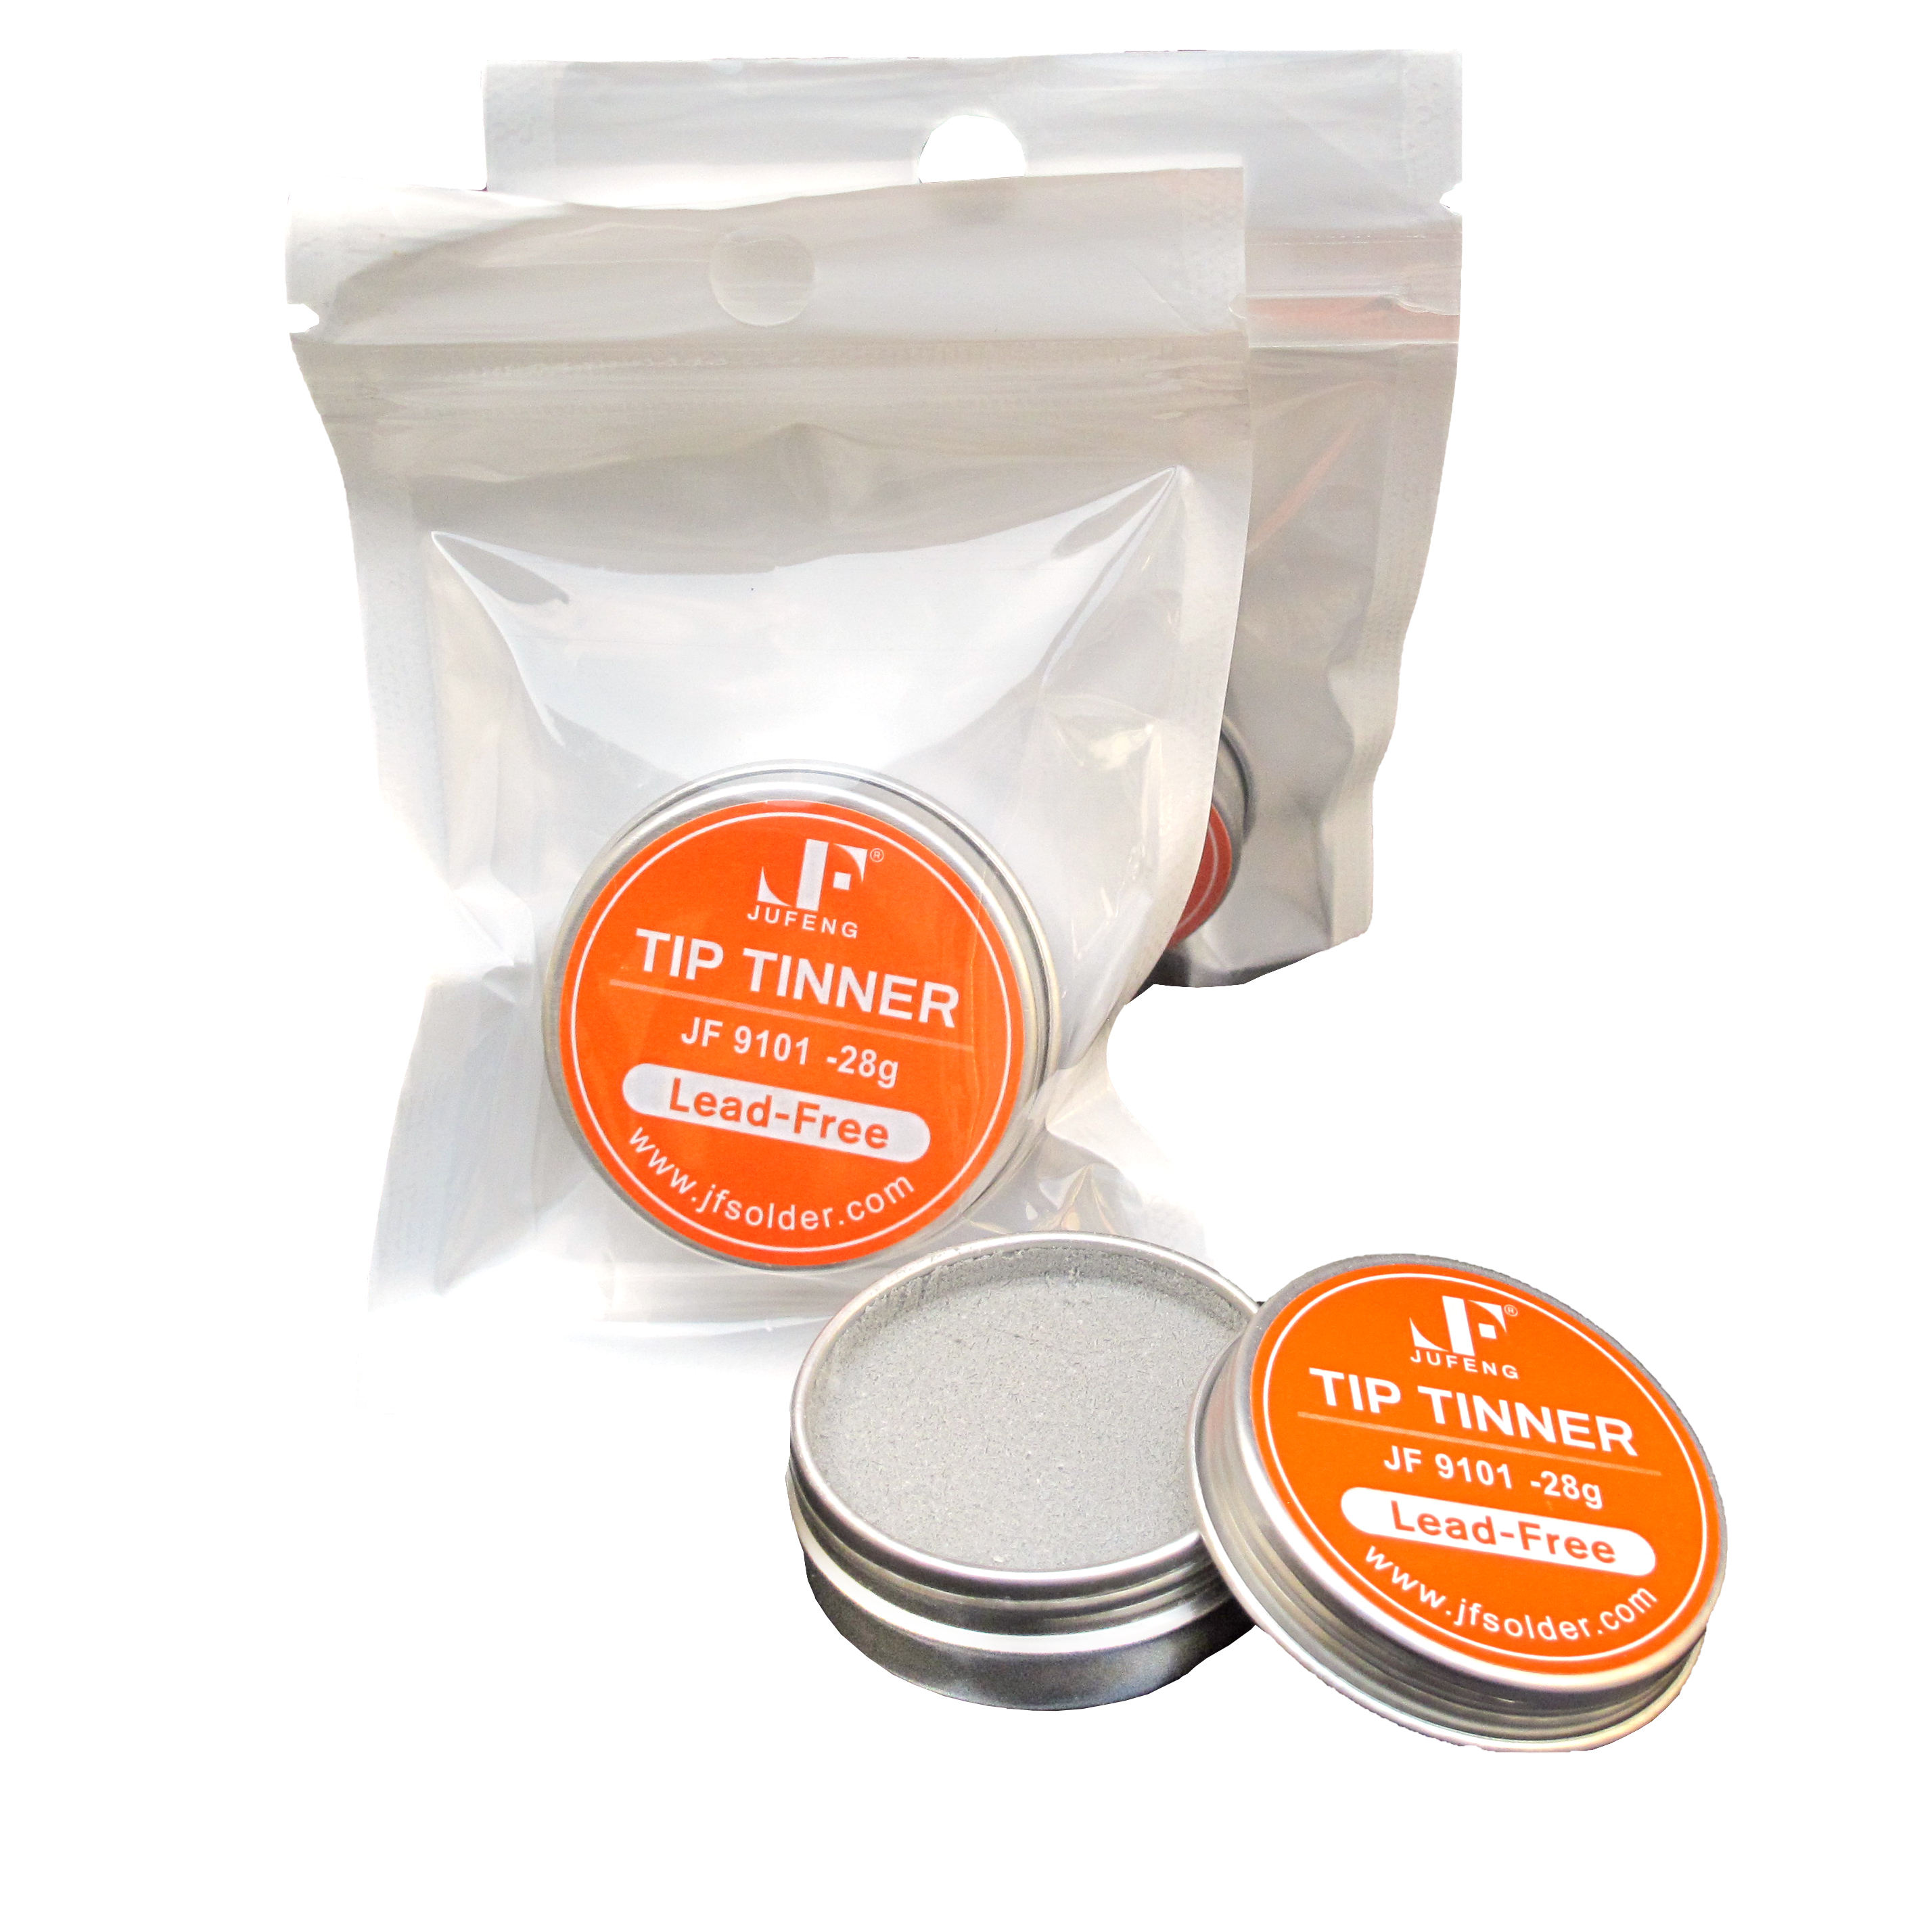 Soldering Iron Tip Tinner Activator Tip Cleaner Remover Lead Free 20 gm....